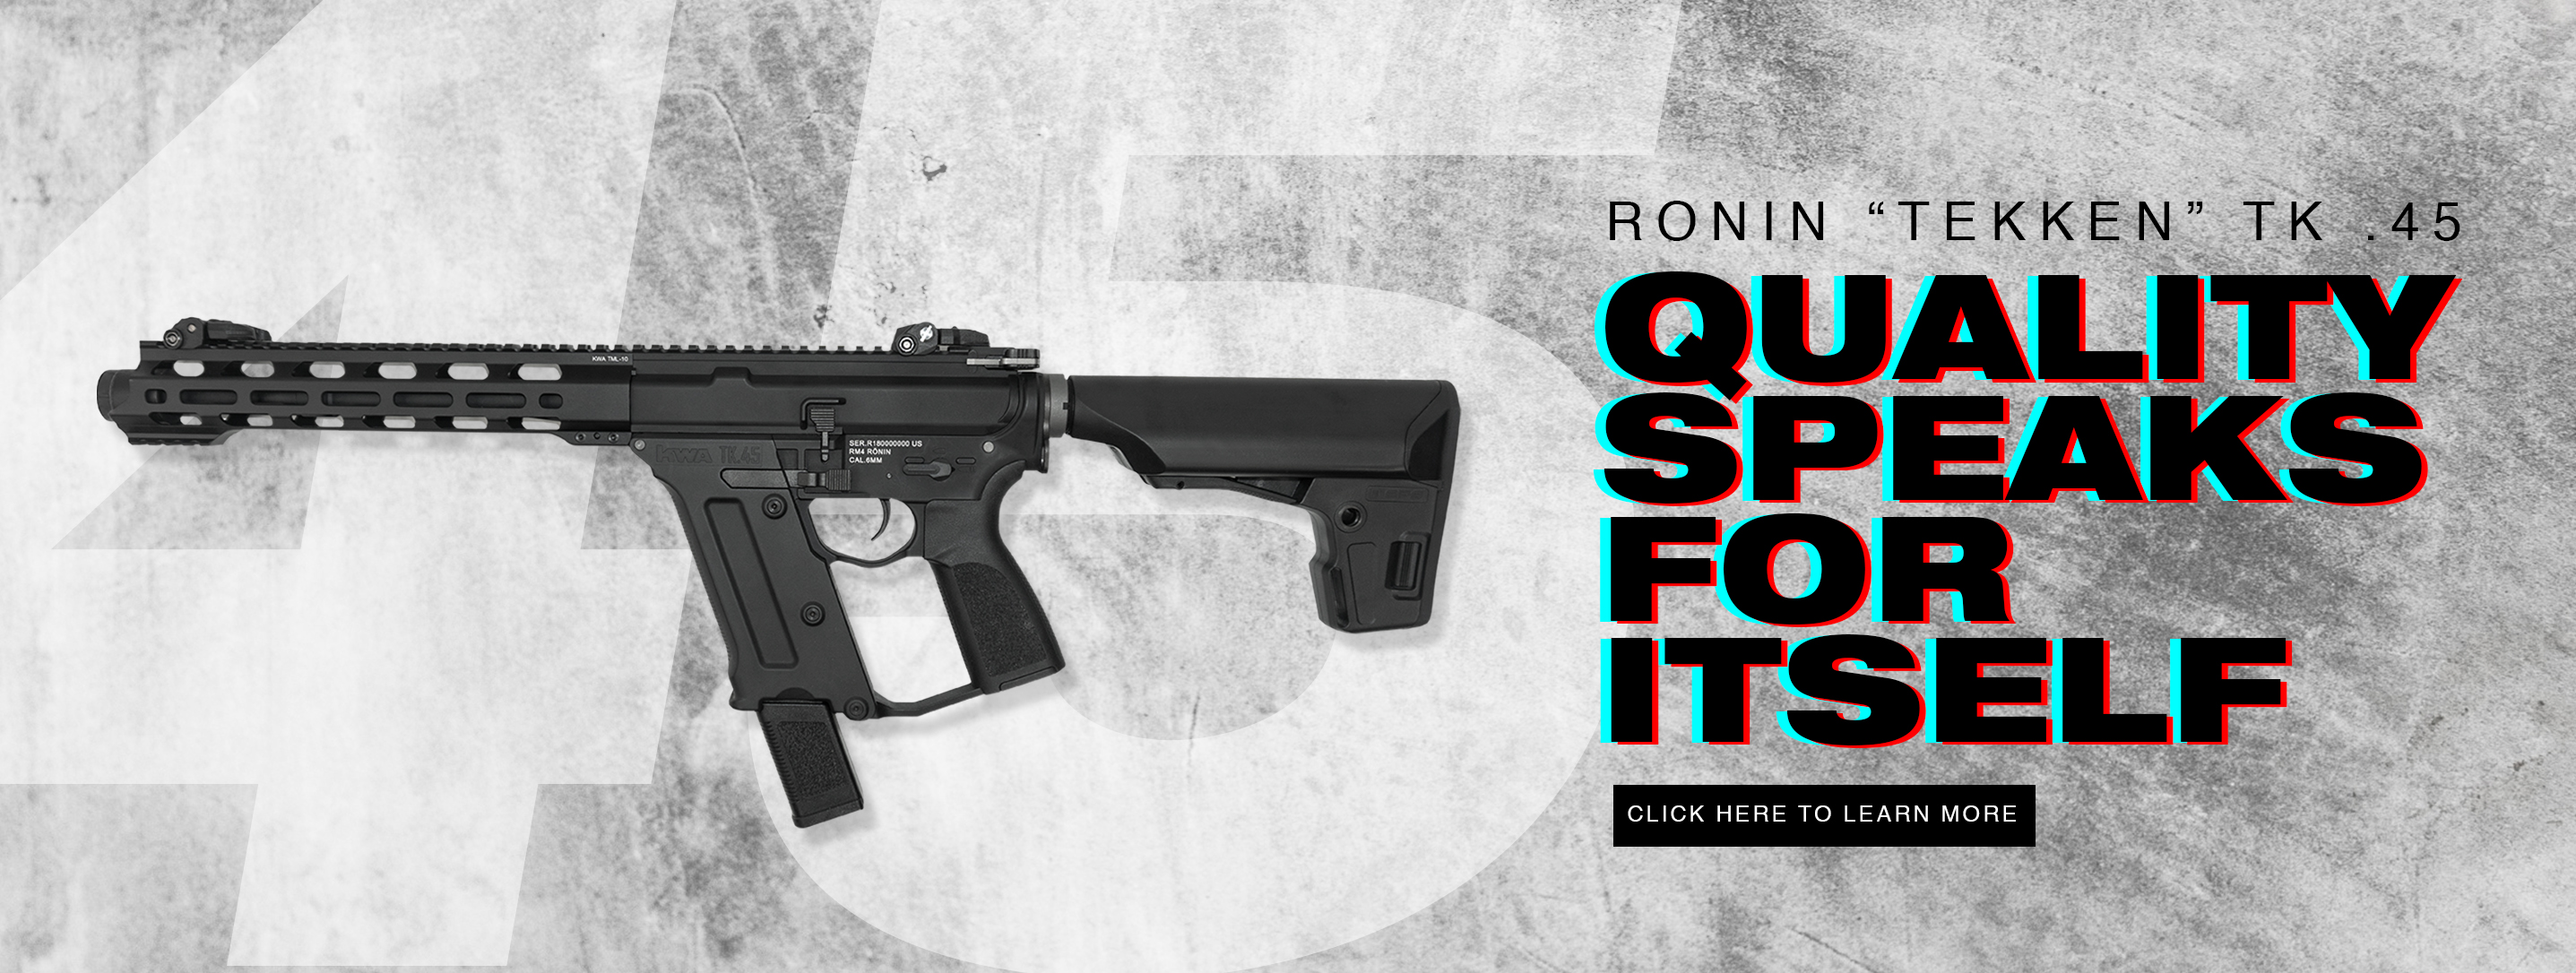 Airsoft Guns Danmark kwa airsoft – built to perform